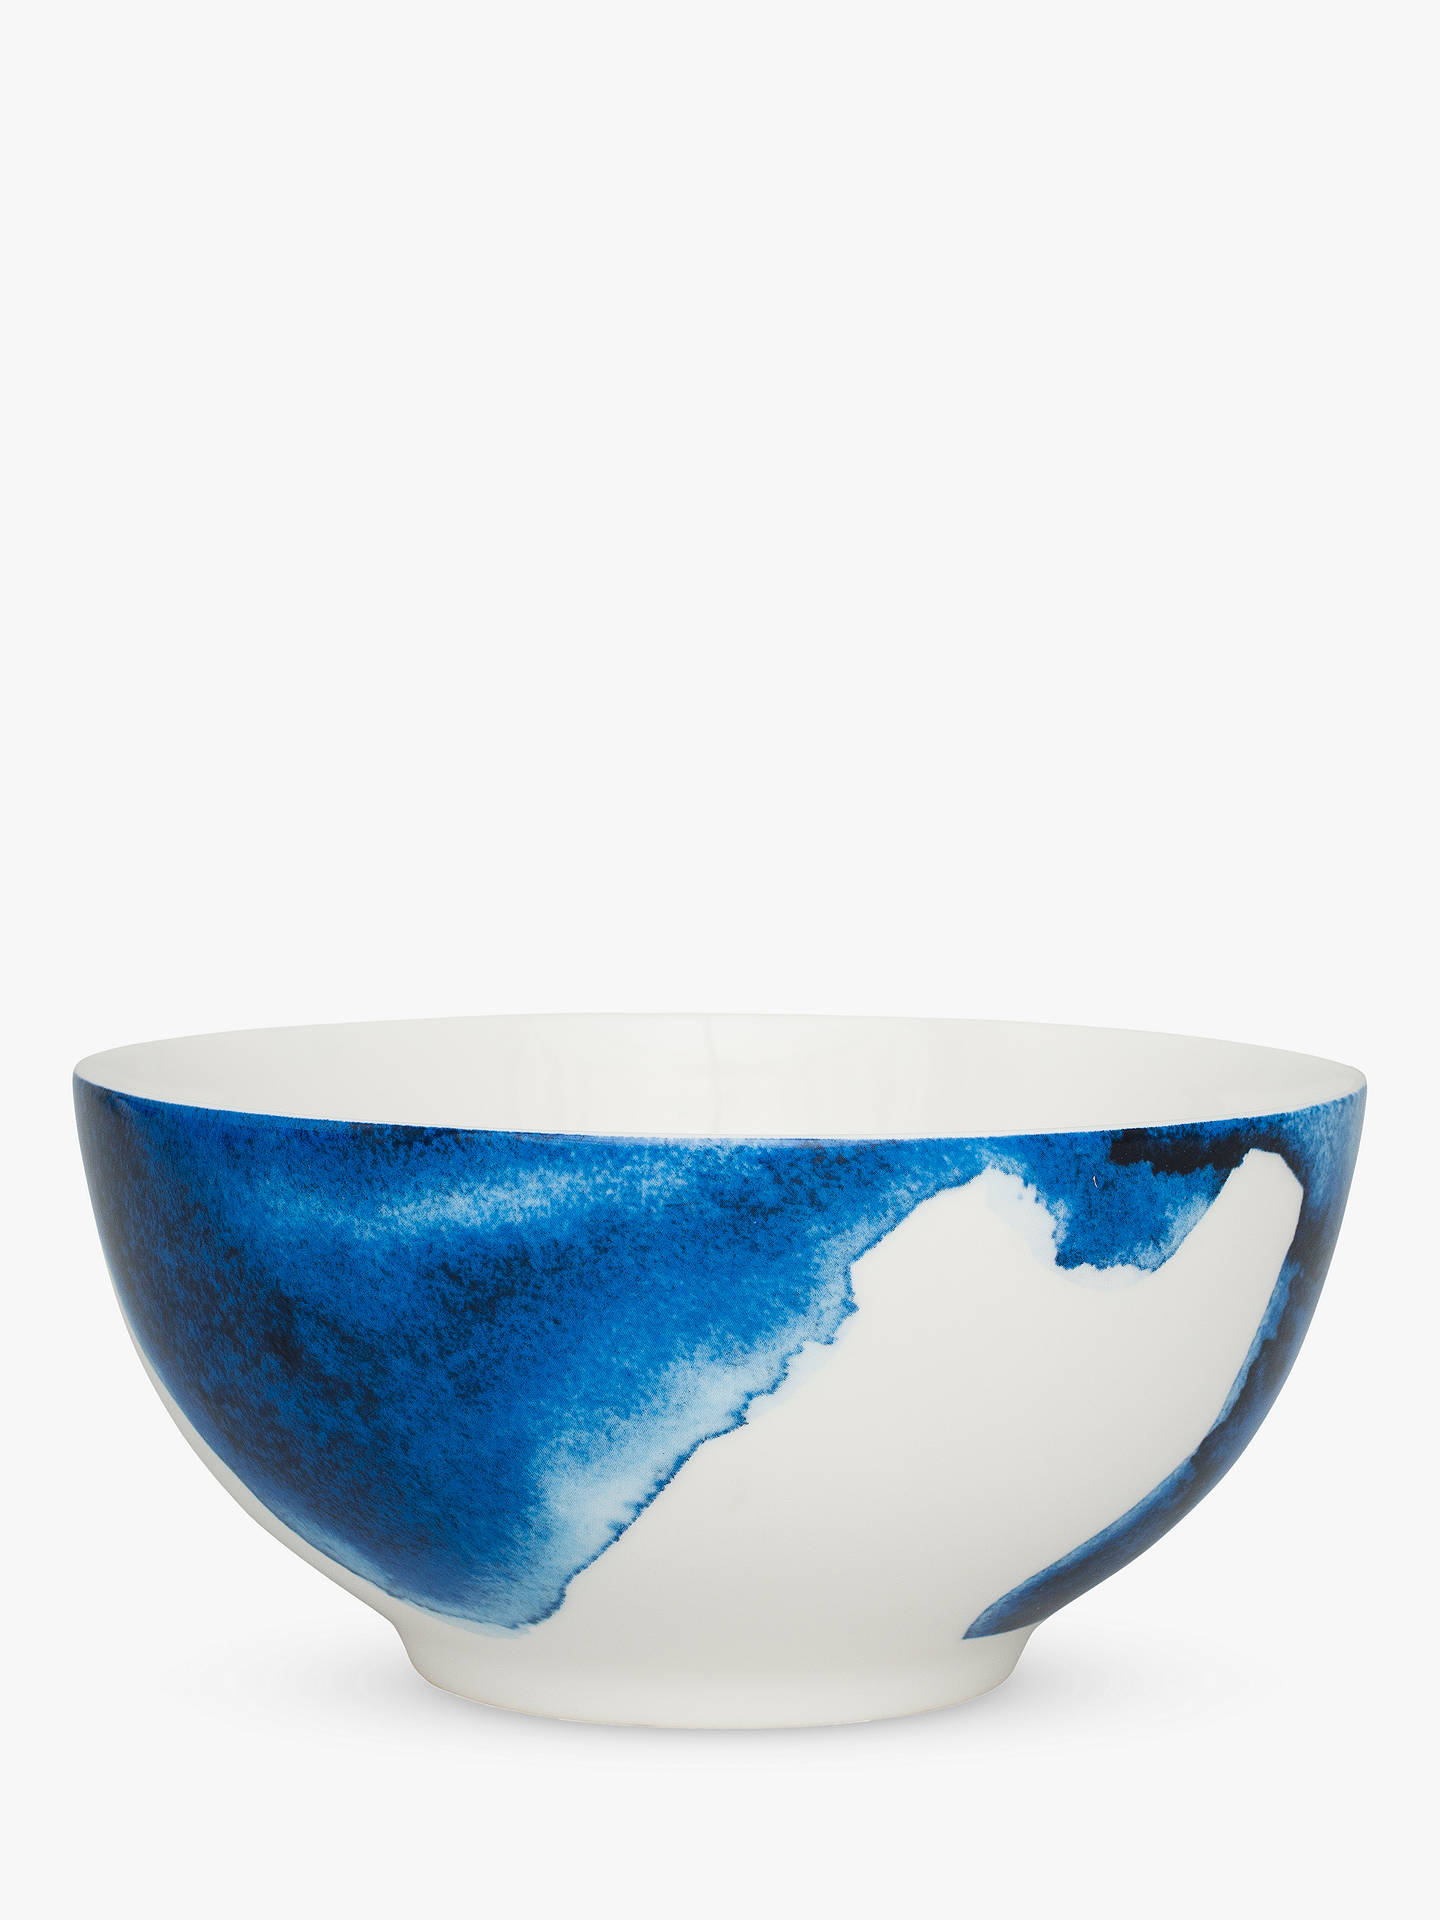 BuyRick Stein Coves of Cornwall Trevone Bay Salad Bowl, Blue/White, Dia.21cm Online at johnlewis.com